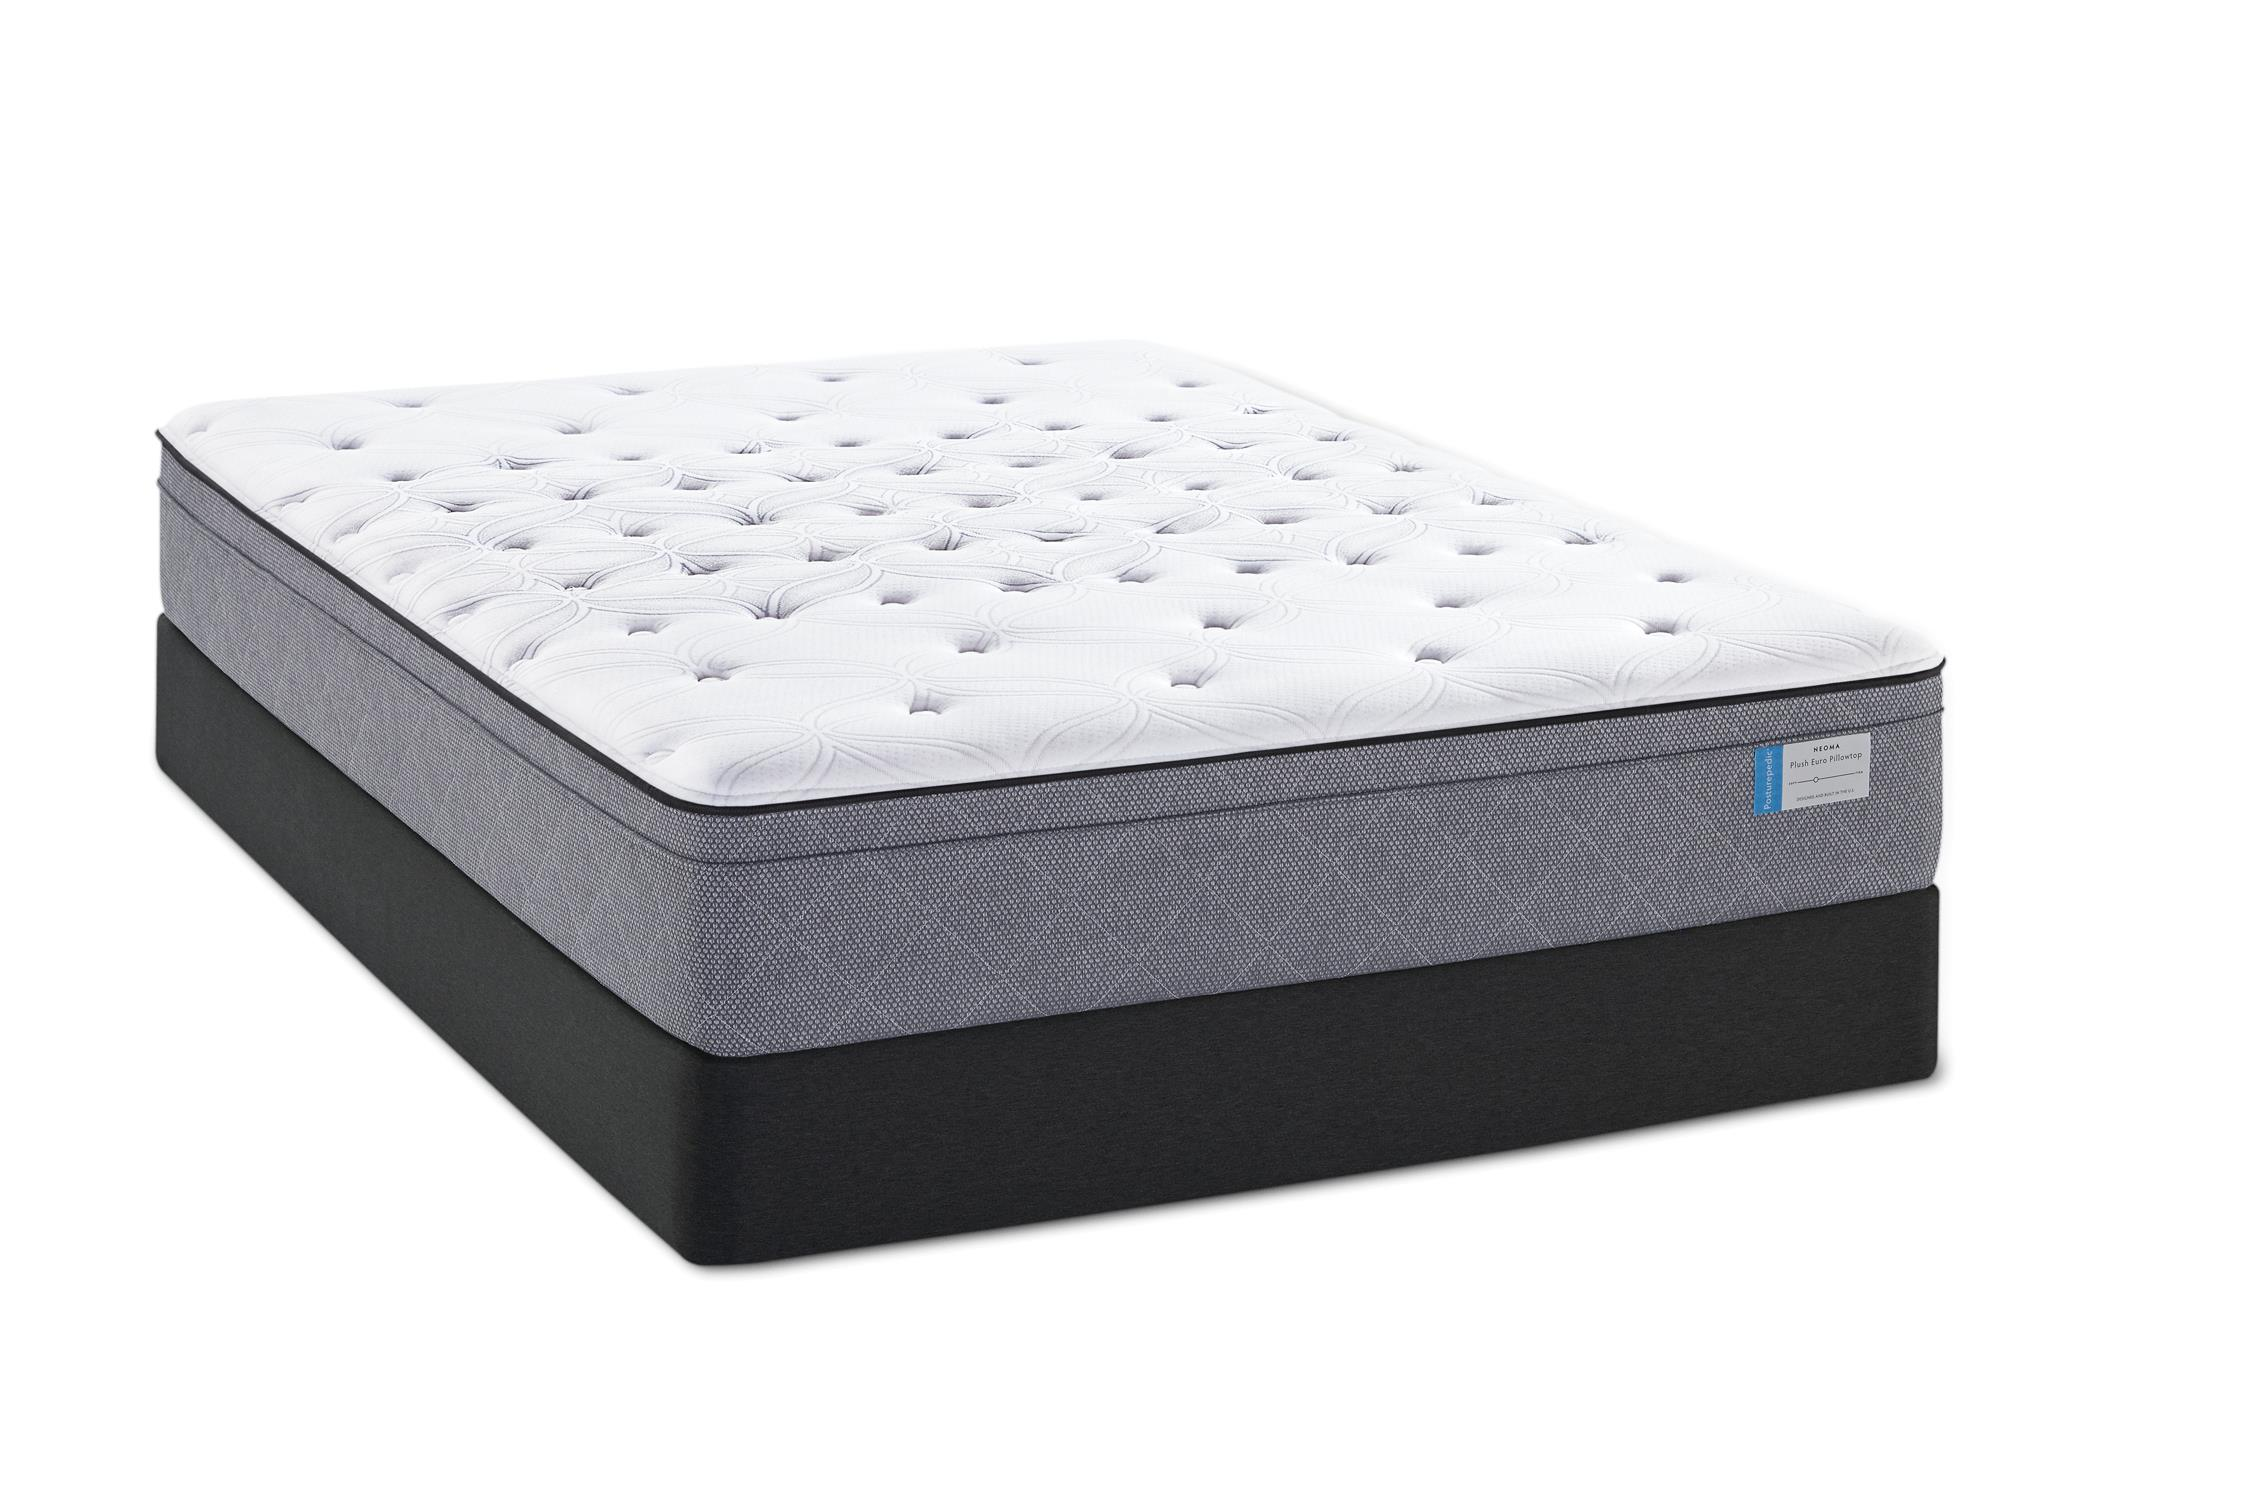 Sealy Posturepedic Delegate King Plush FX EPT Mattress Adj Set - Item Number: PlushFXPT-K+2x609663Q